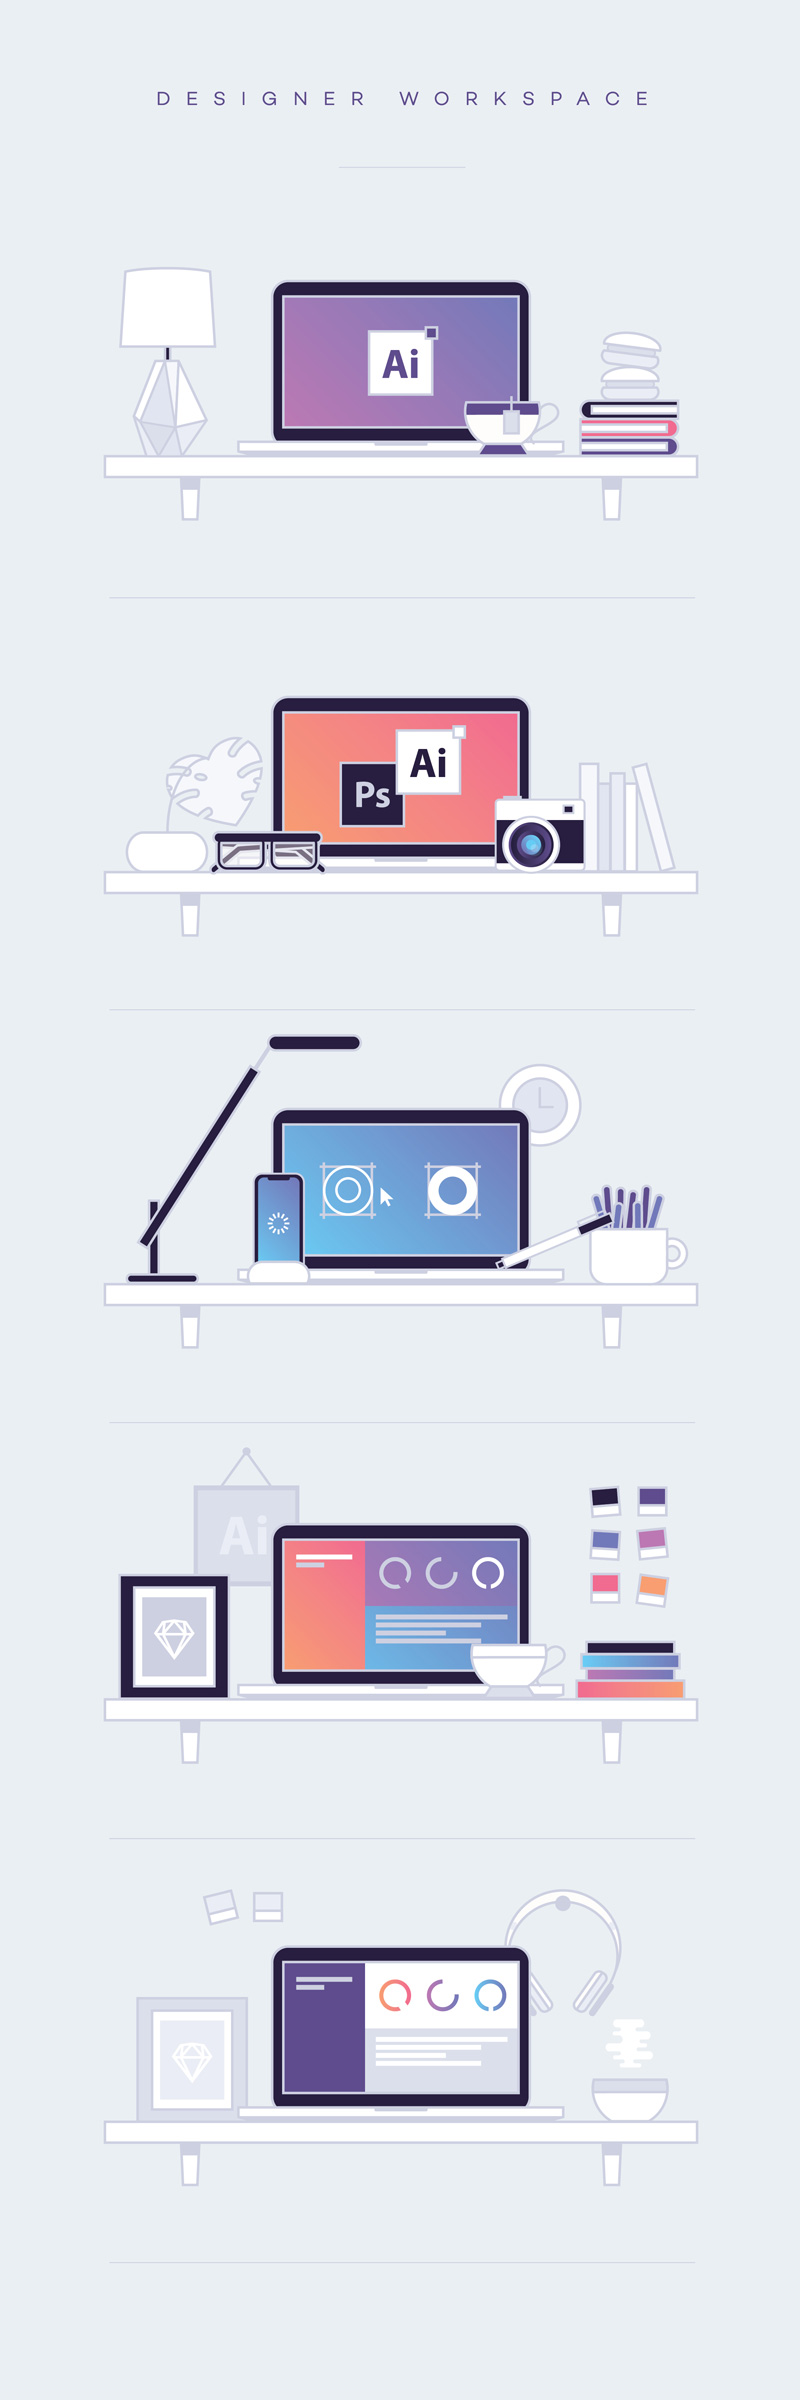 Free designer workspace illustration pack